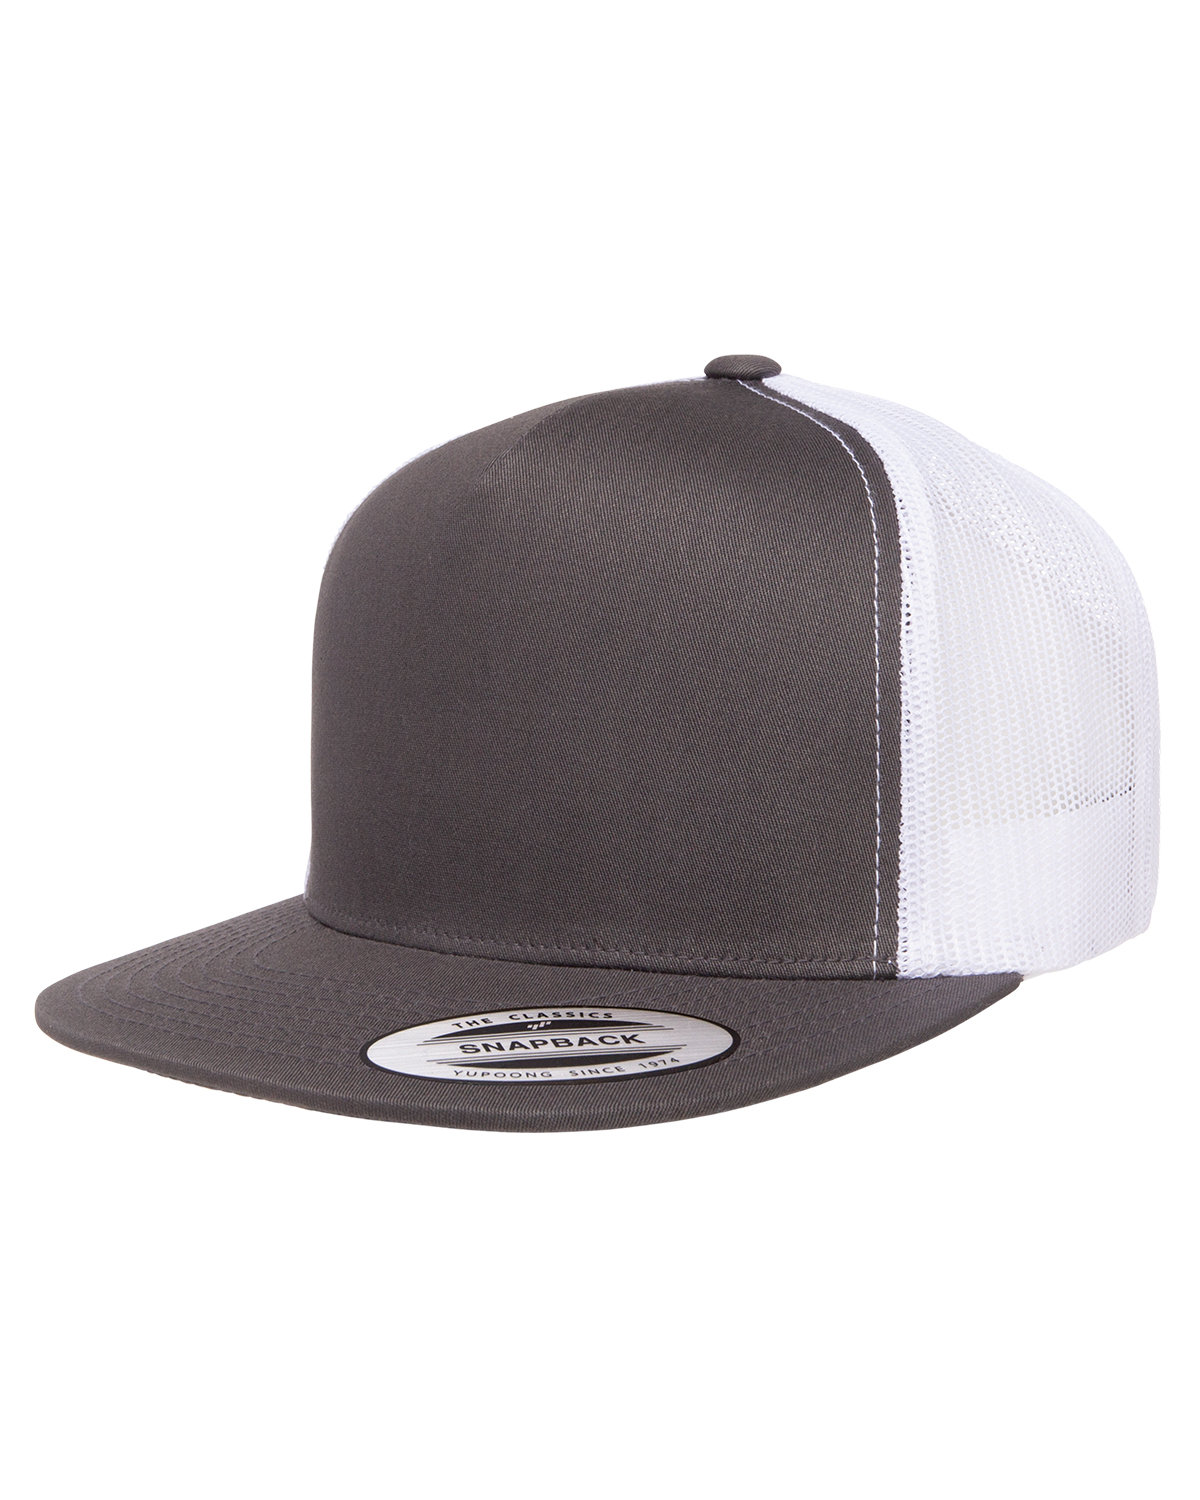 Yupoong Adult 5-Panel Classic Trucker Cap CHARCOAL/ WHITE